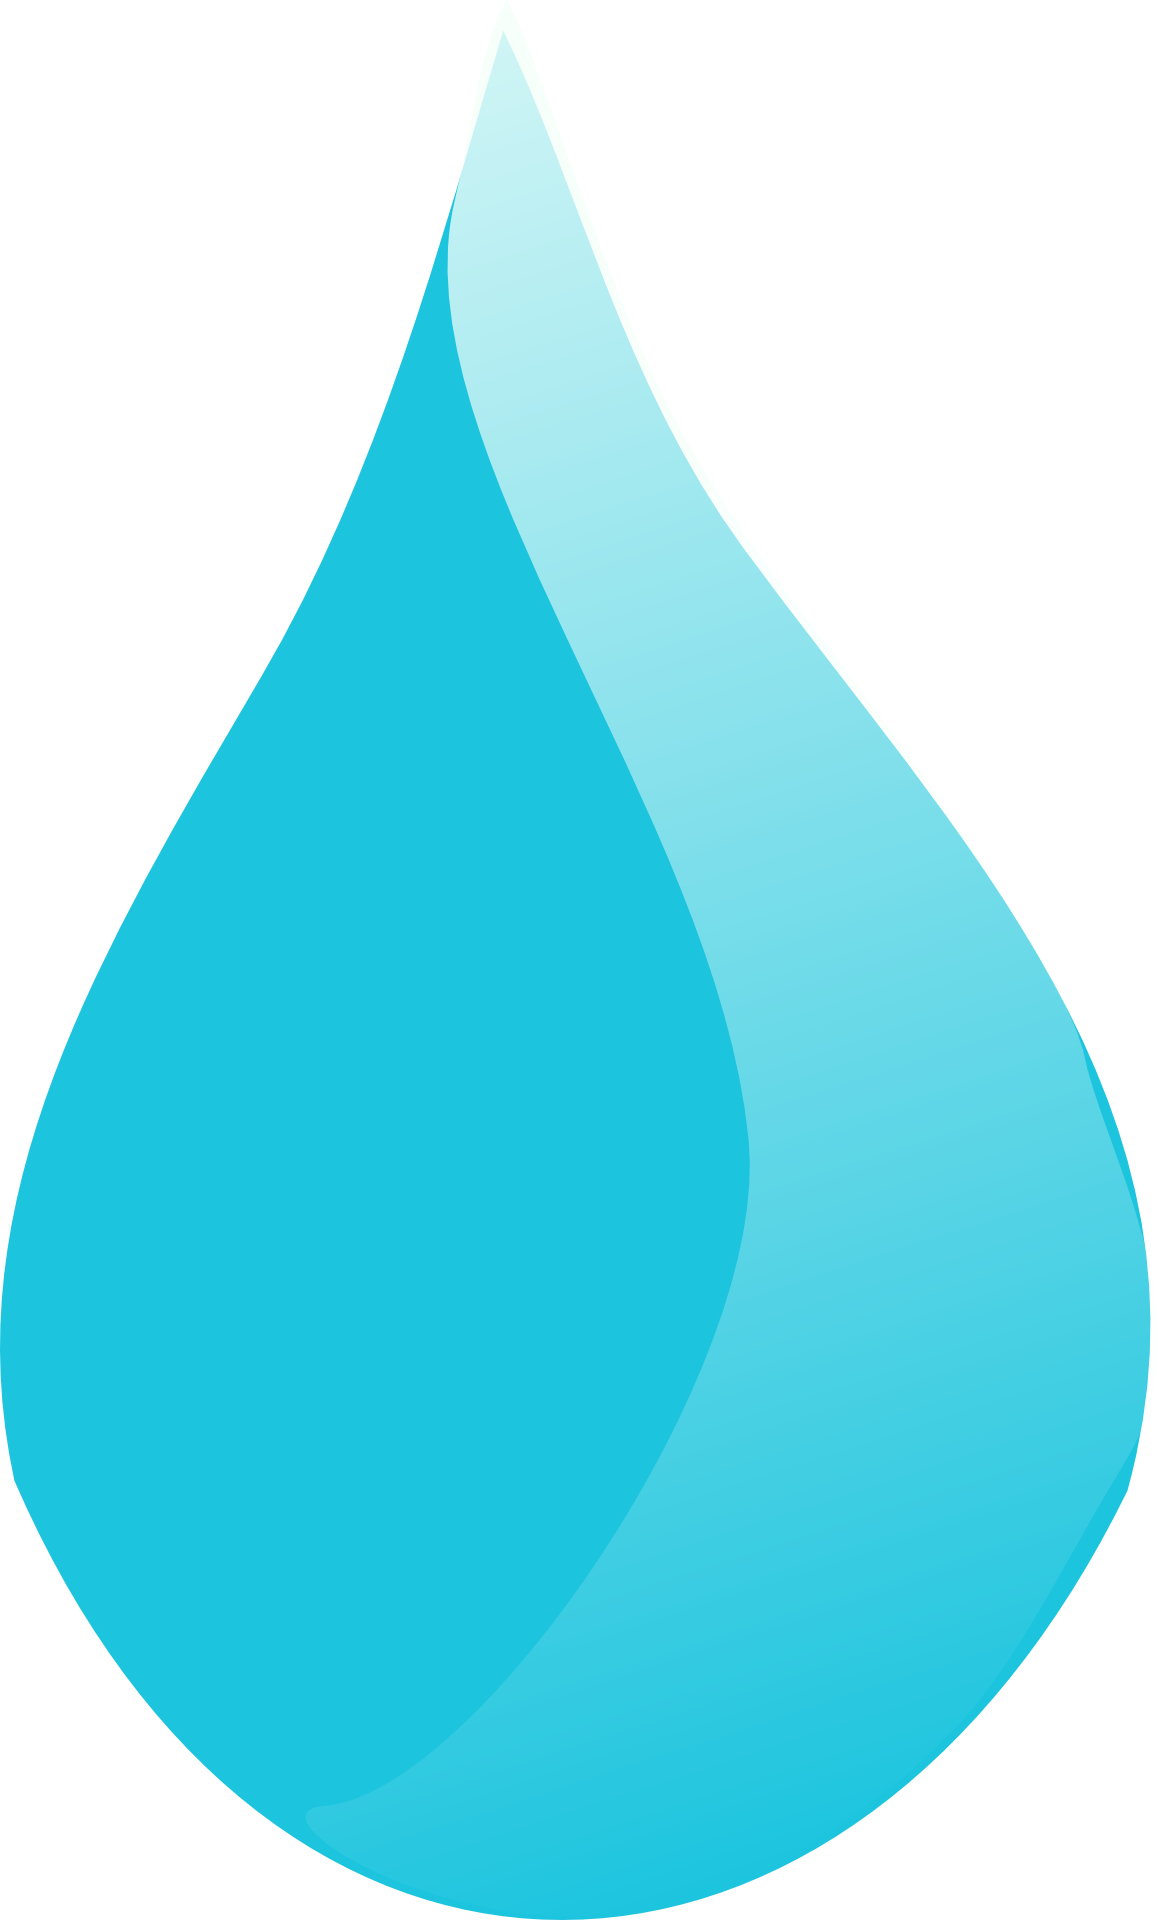 water drop, rain drop,blue, liquid, teardrop ,cartoon vector